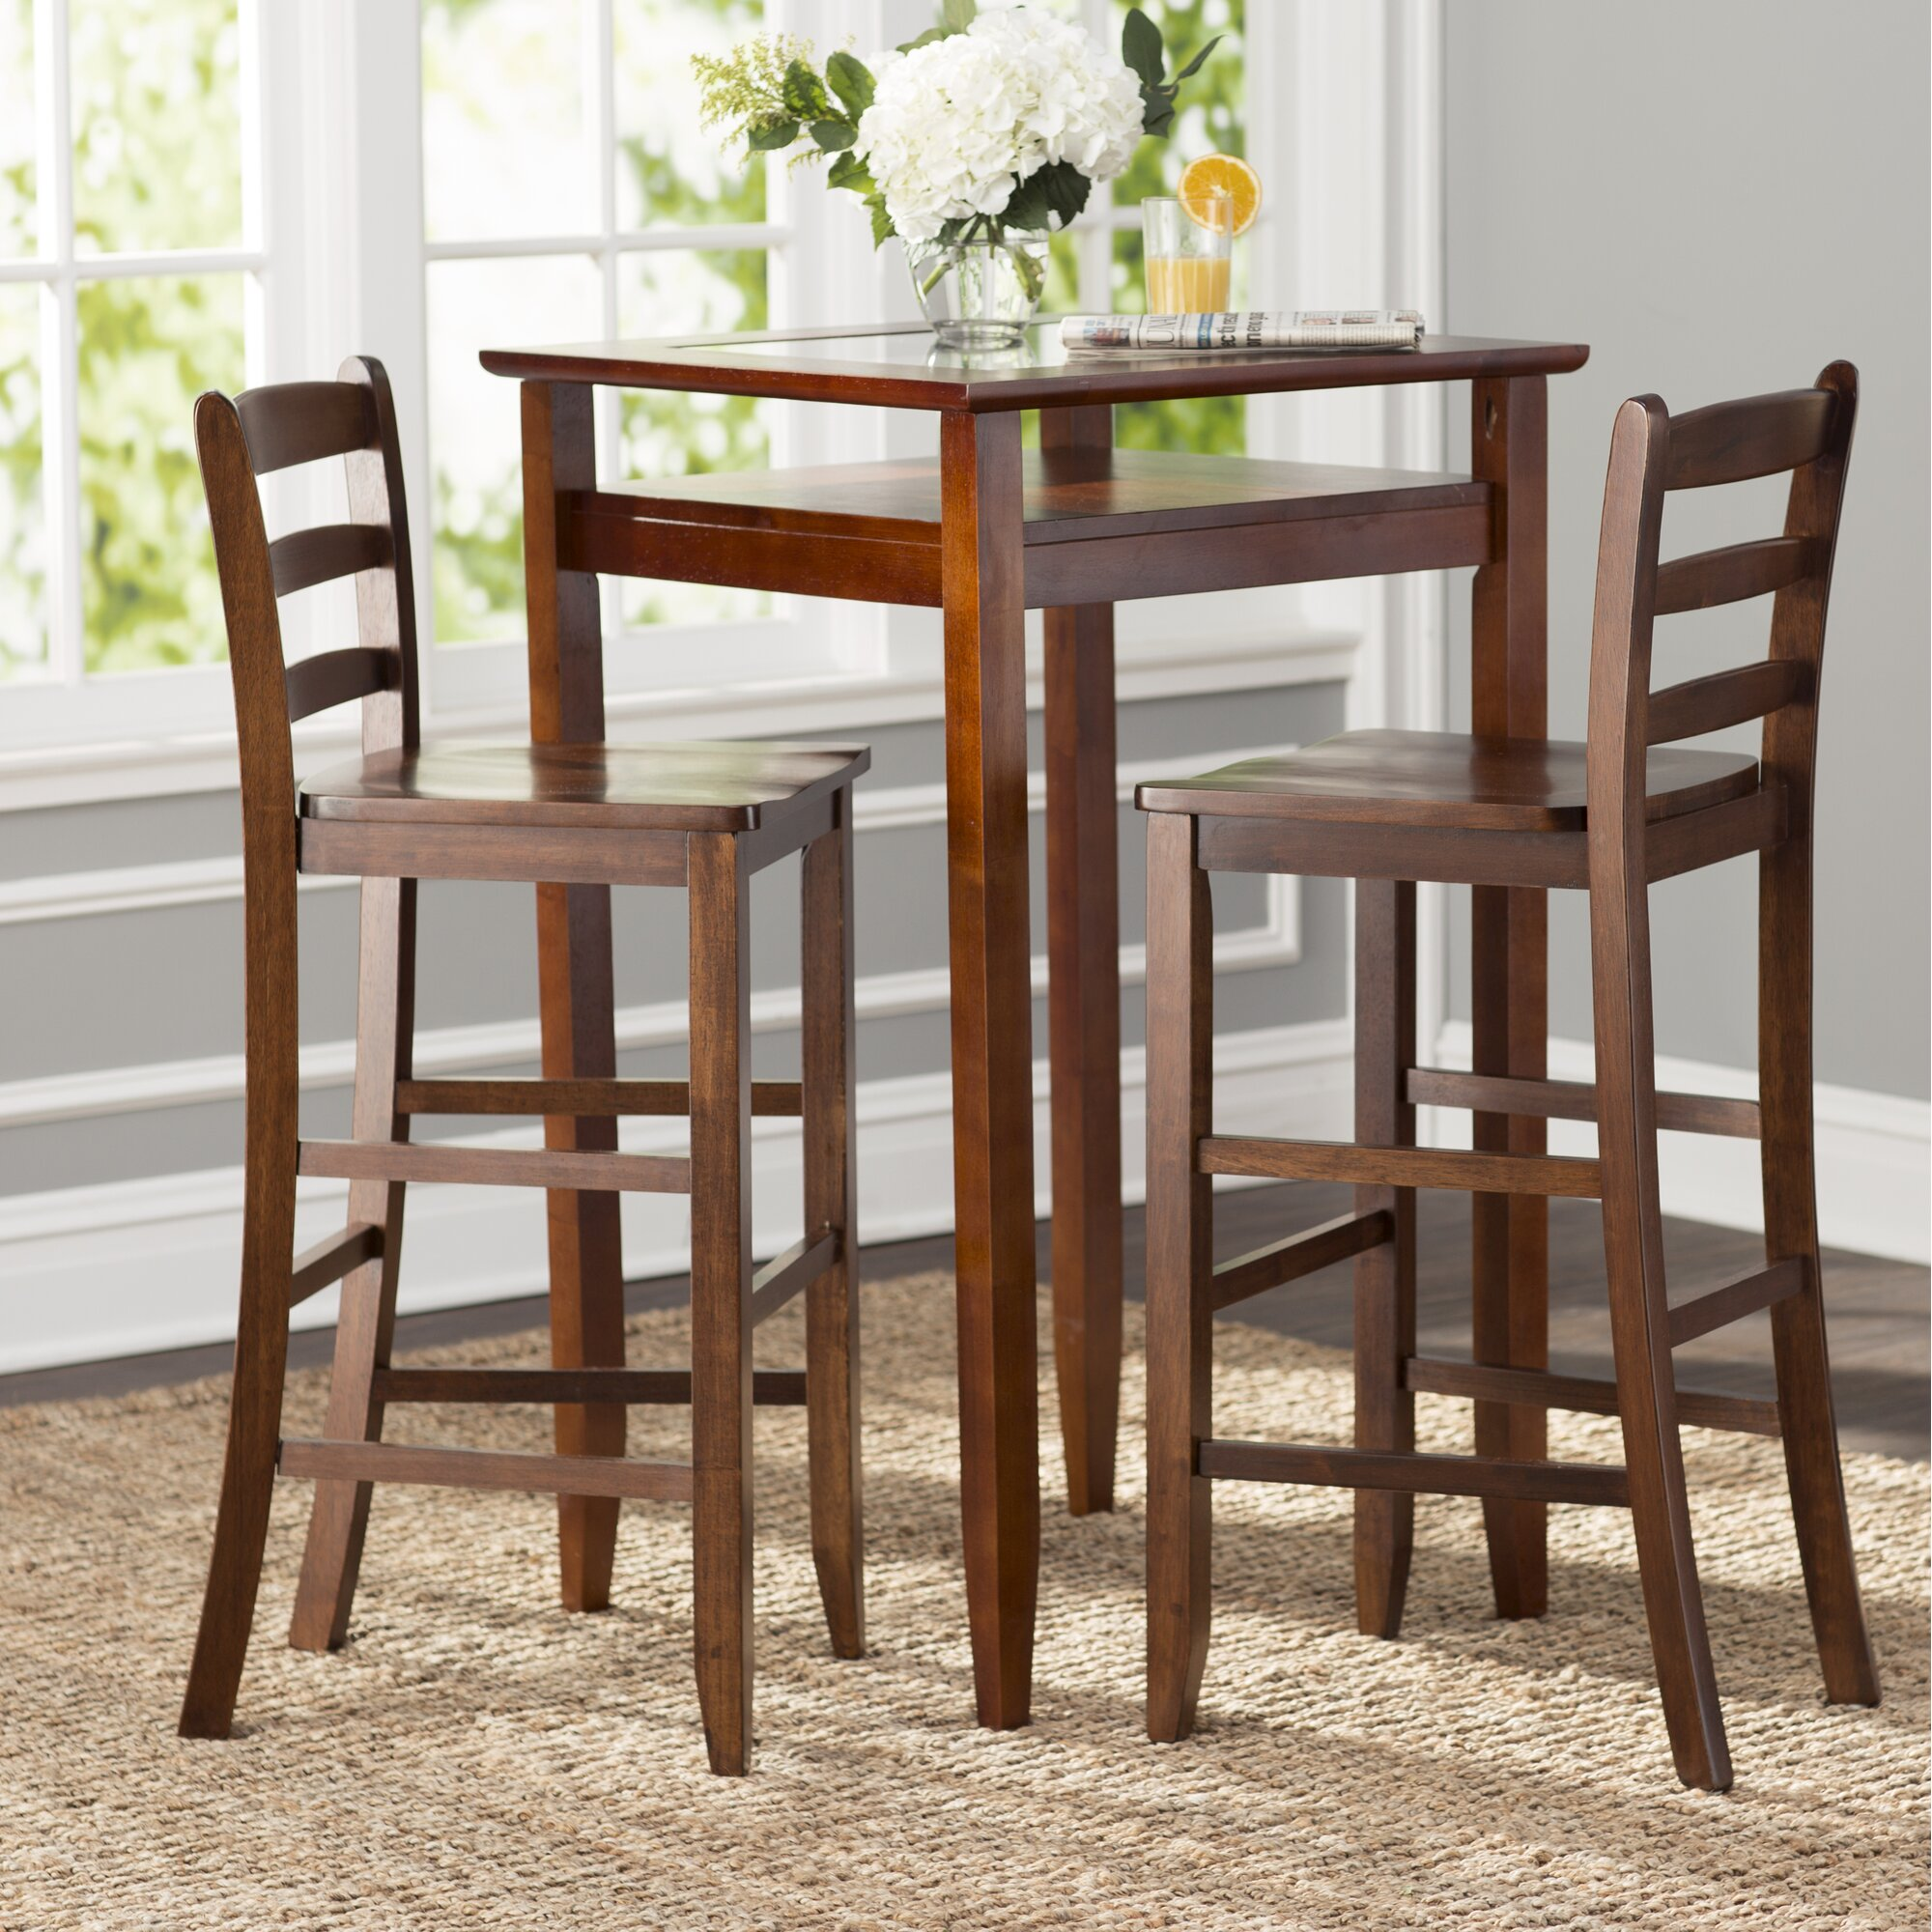 Kitchen bar table sets - Halo 3 Piece Pub Table Set